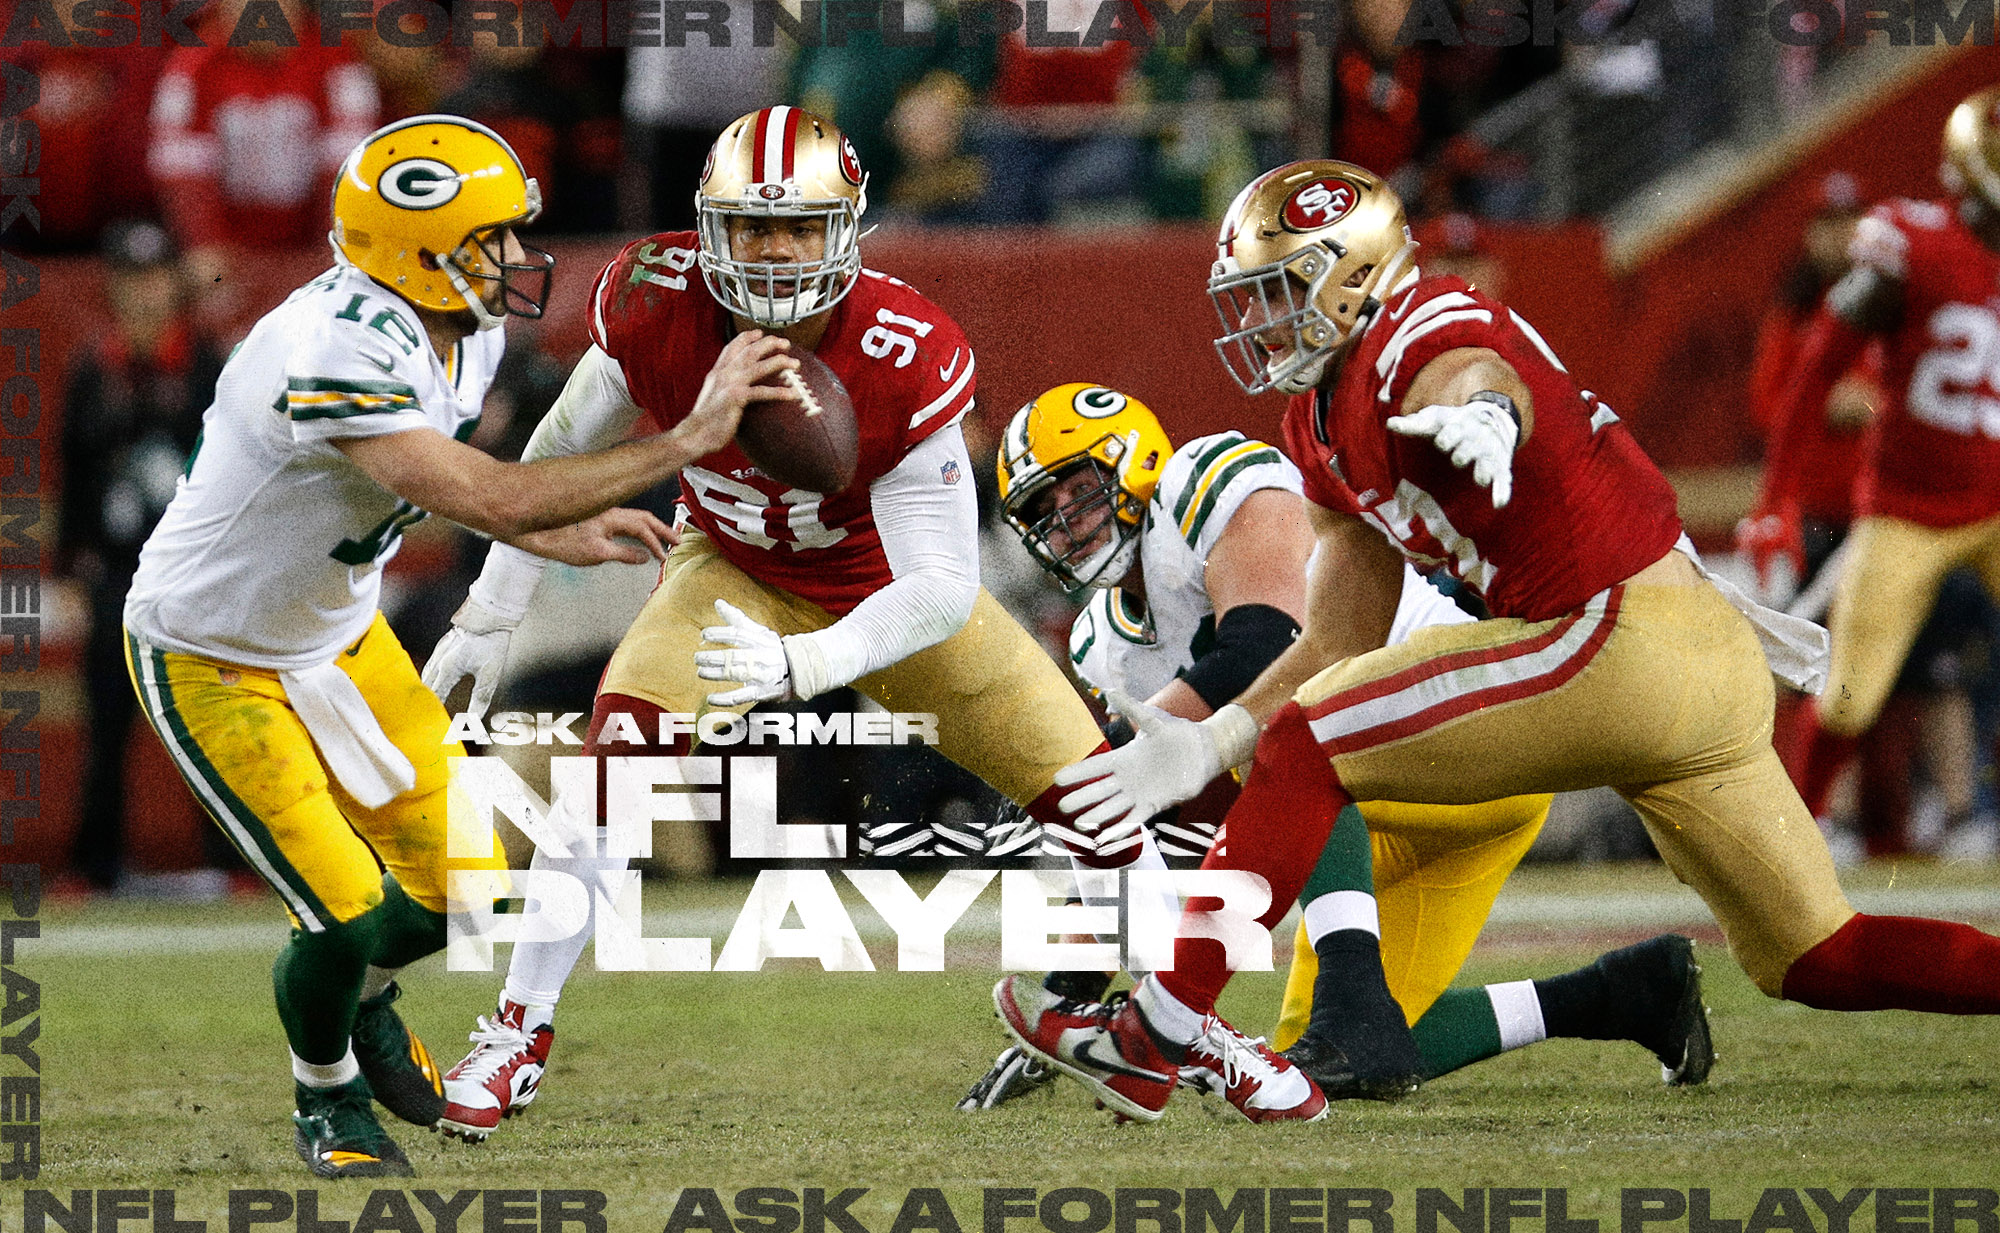 Ask a former NFL player: What's the best position matchup in the Conference Championship Round?